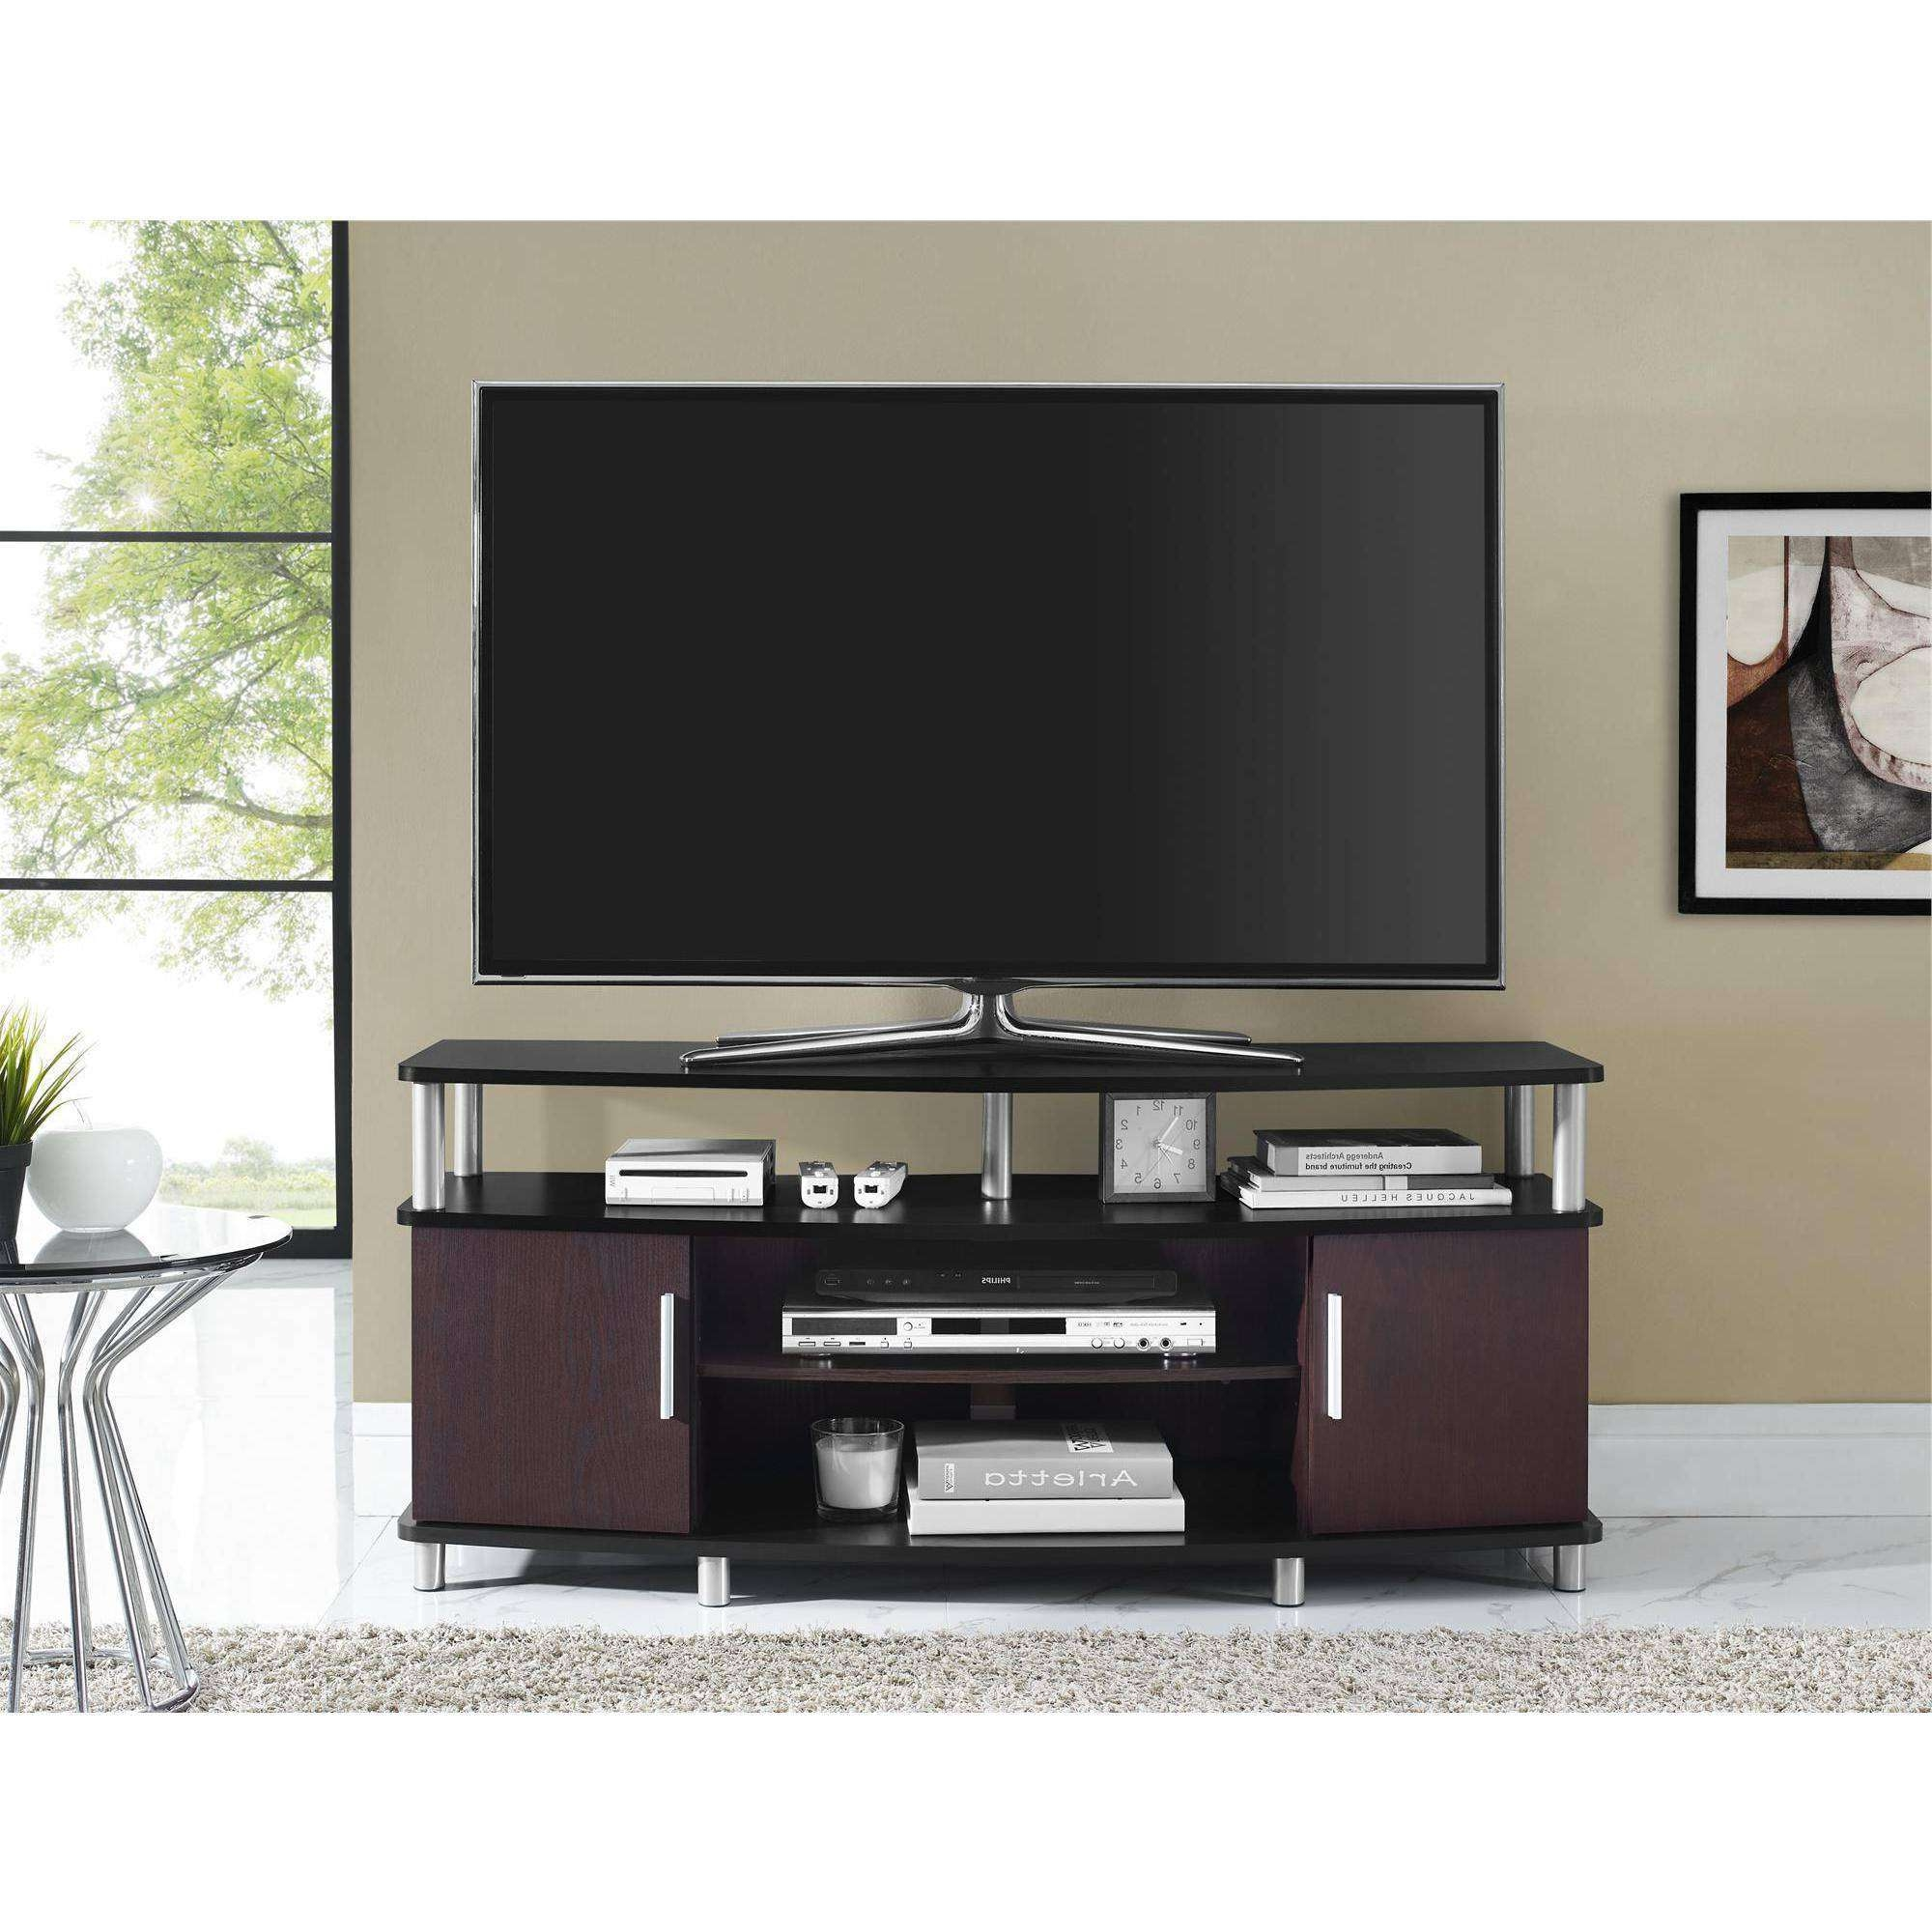 Tv Stand For Coaster Stands Console Inch Walmart Corner Flattv Lg With Regard To 50 Inch Corner Tv Cabinets (View 13 of 20)